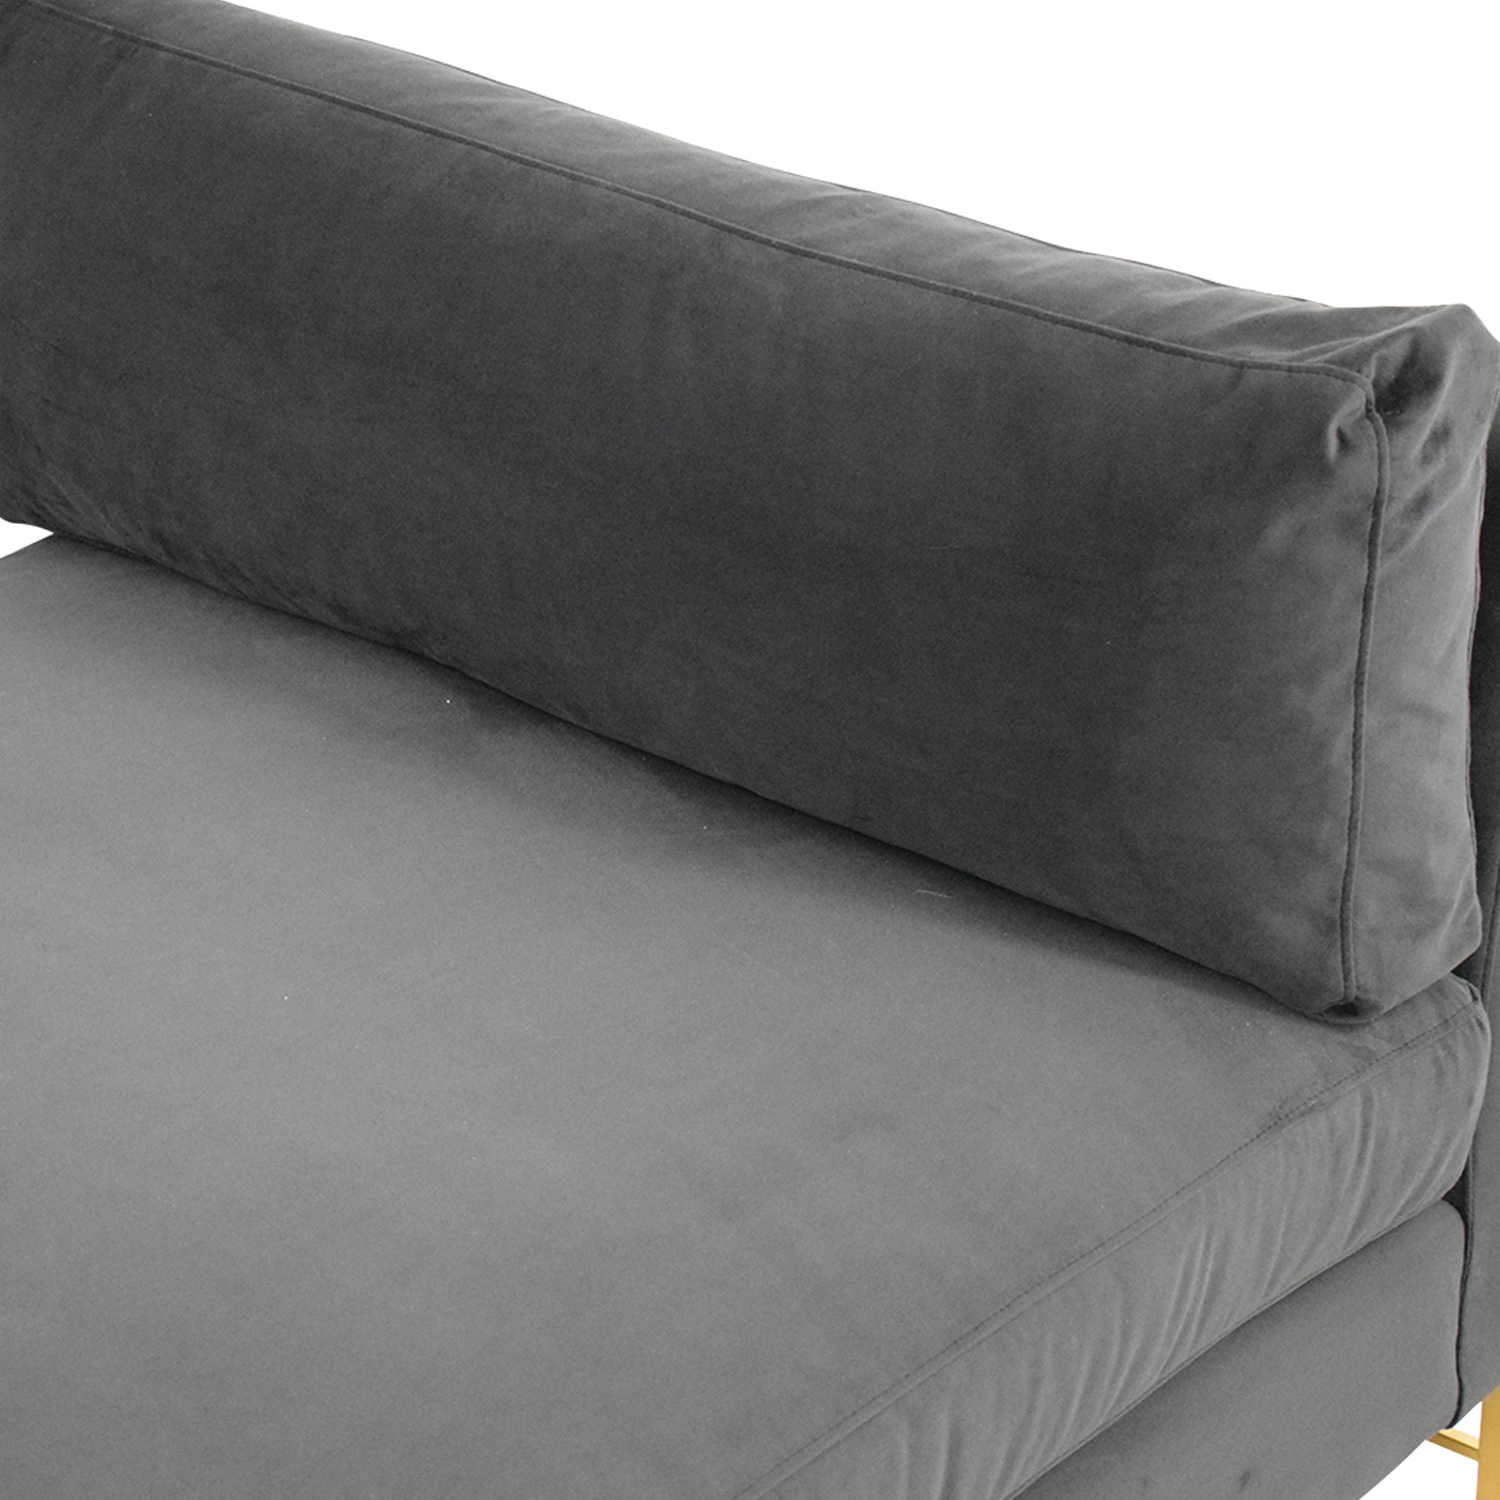 Crate & Barrel Crate & Barrel Tyson Daybed with Brass Base nyc